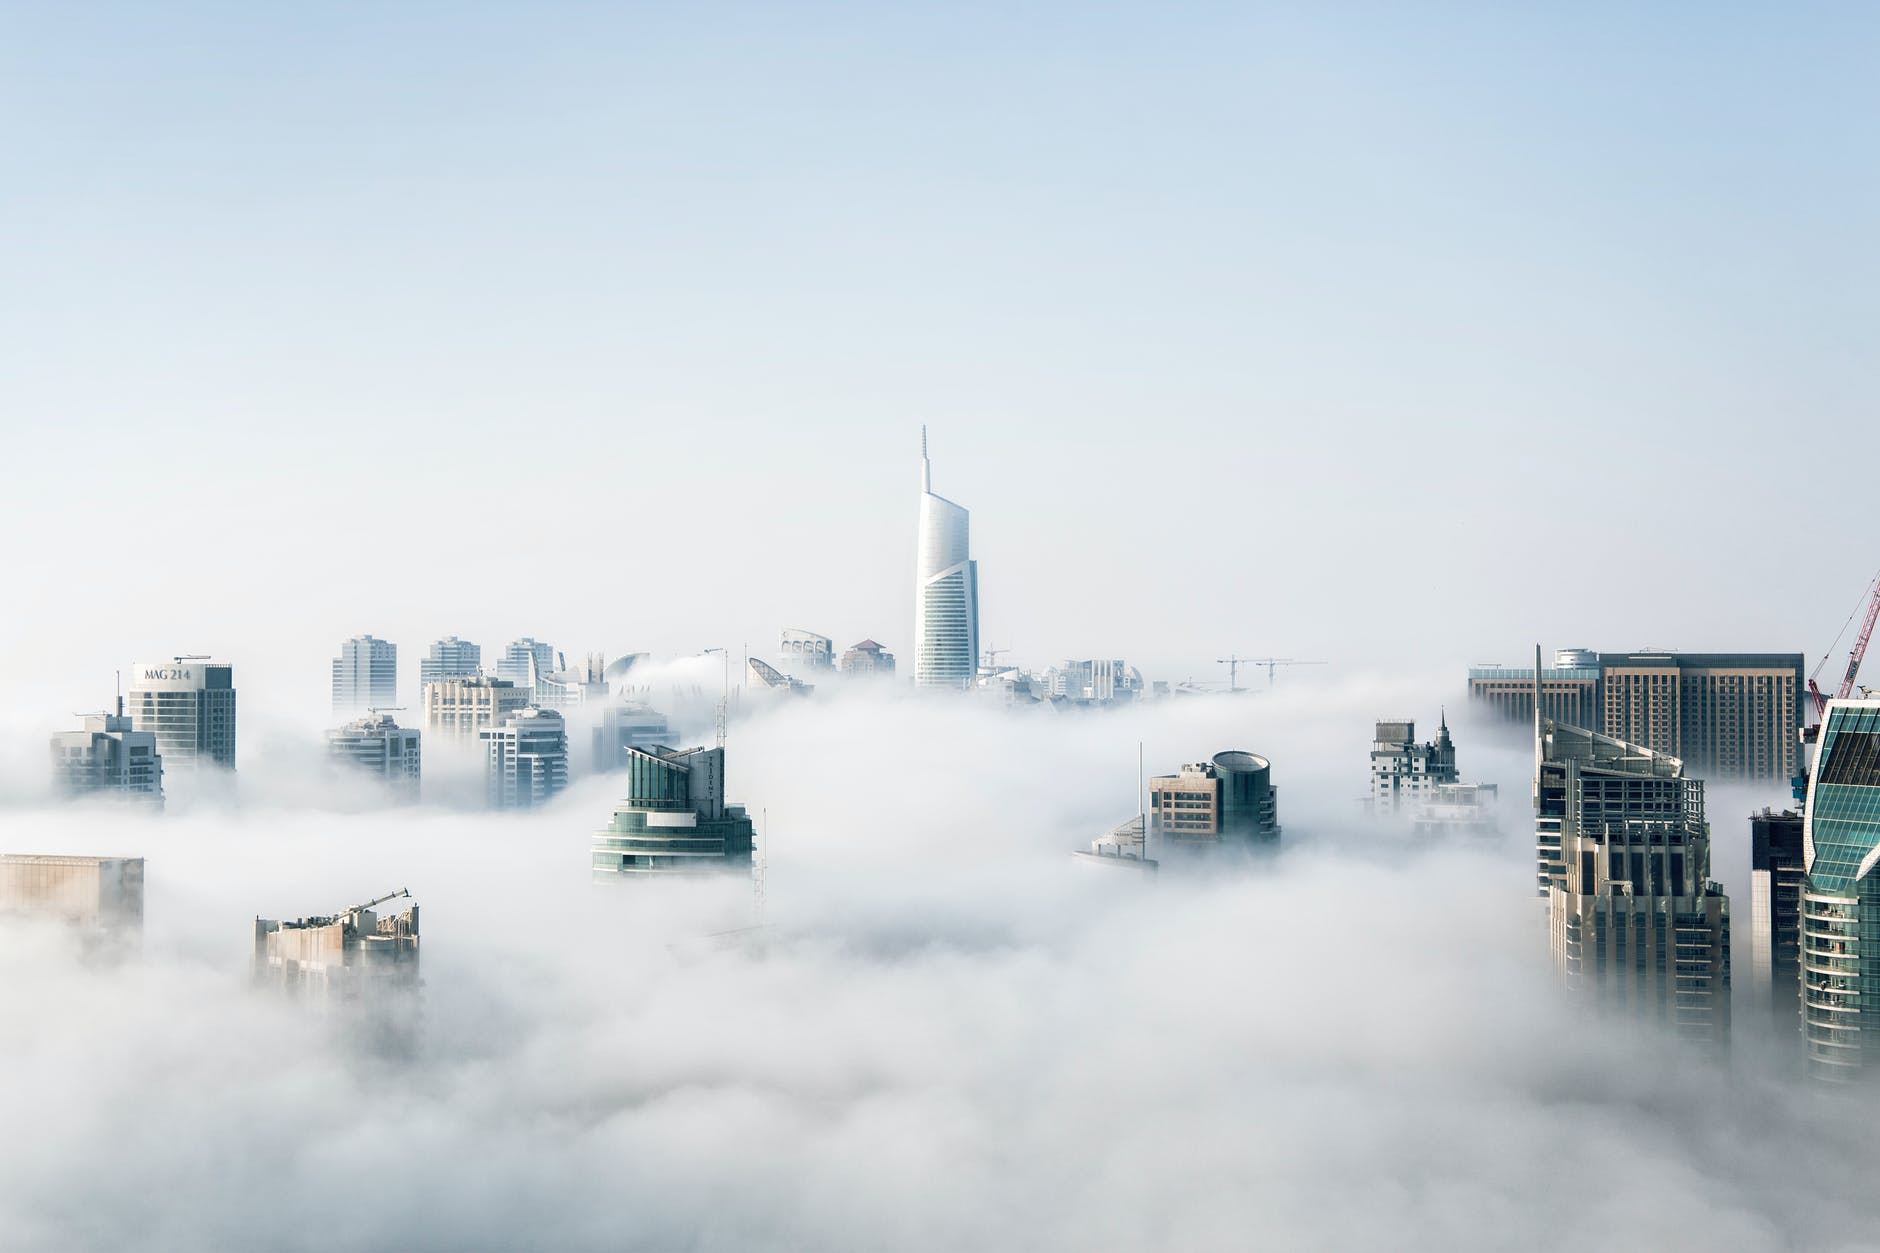 This image shows a city skyline but only the tallest buildings which poke out above the clouds. I believe that's Dubai